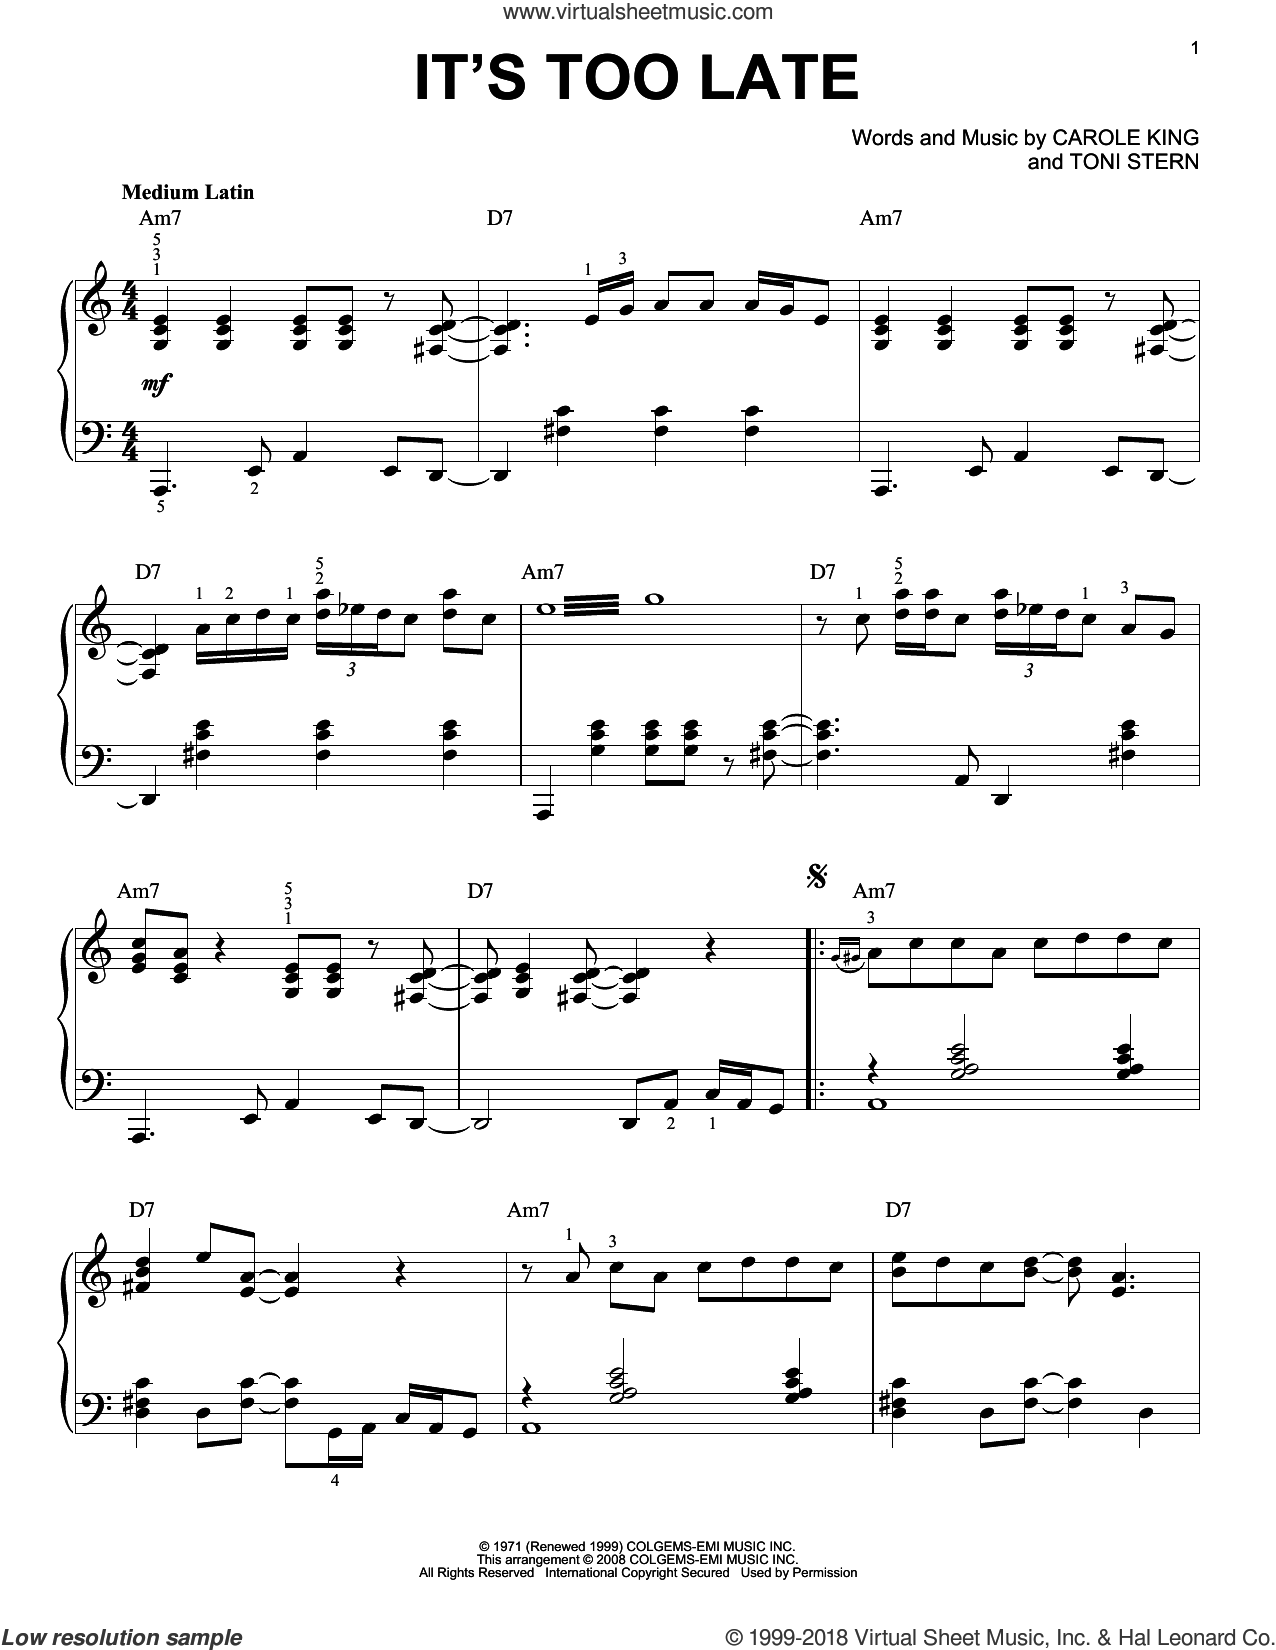 It's Too Late sheet music for piano solo by Toni Stern